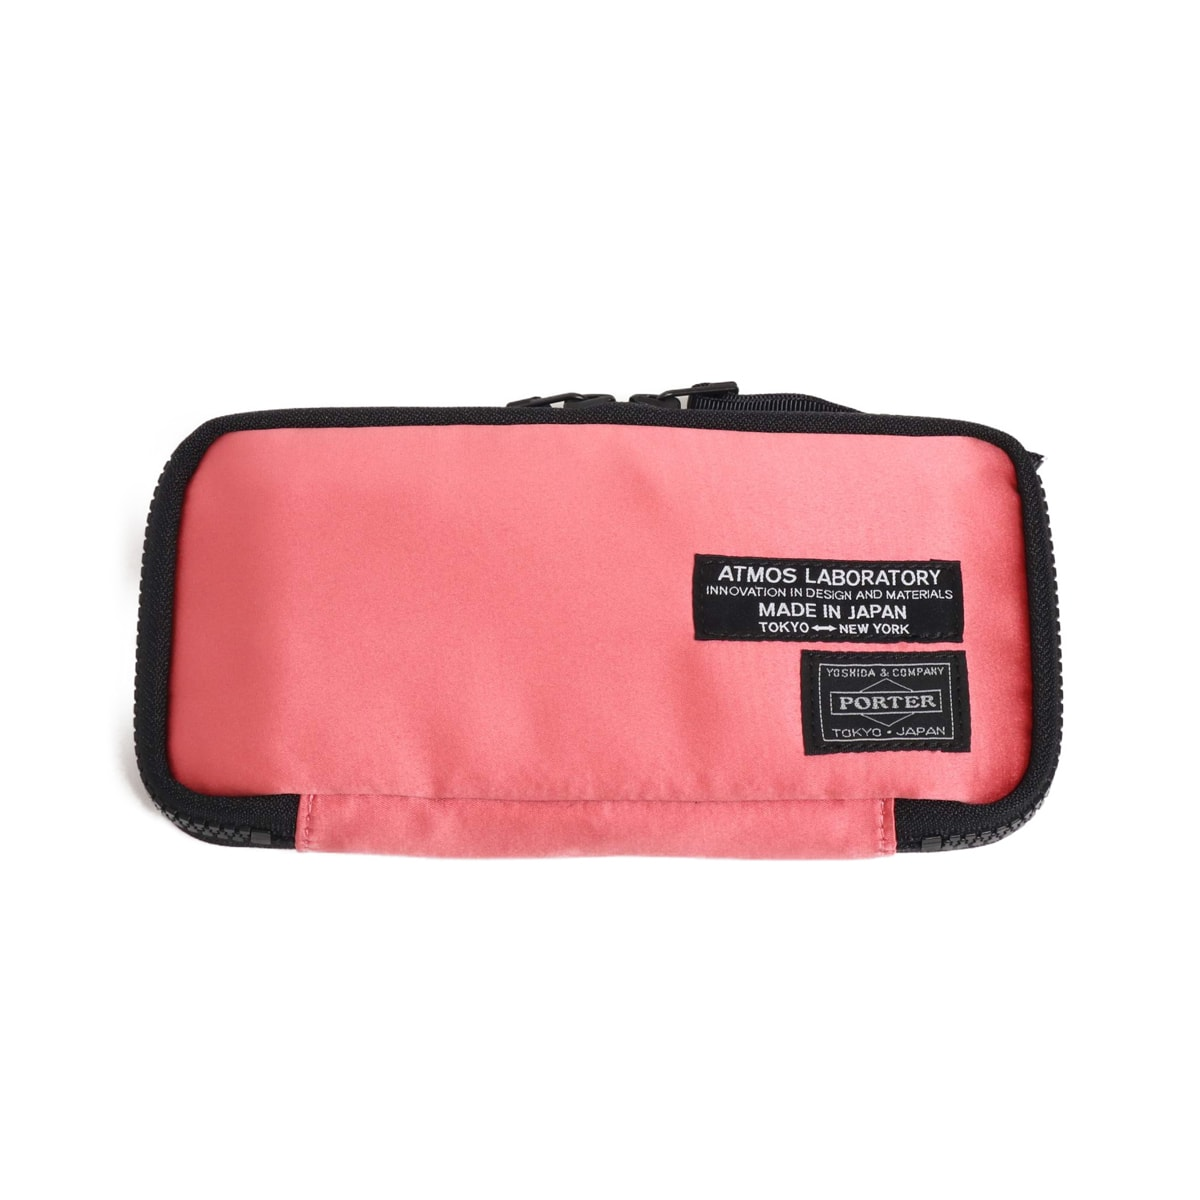 PORTER x ATMOS LAB SATIN WALLET L PINK 19SU-S_photo_large